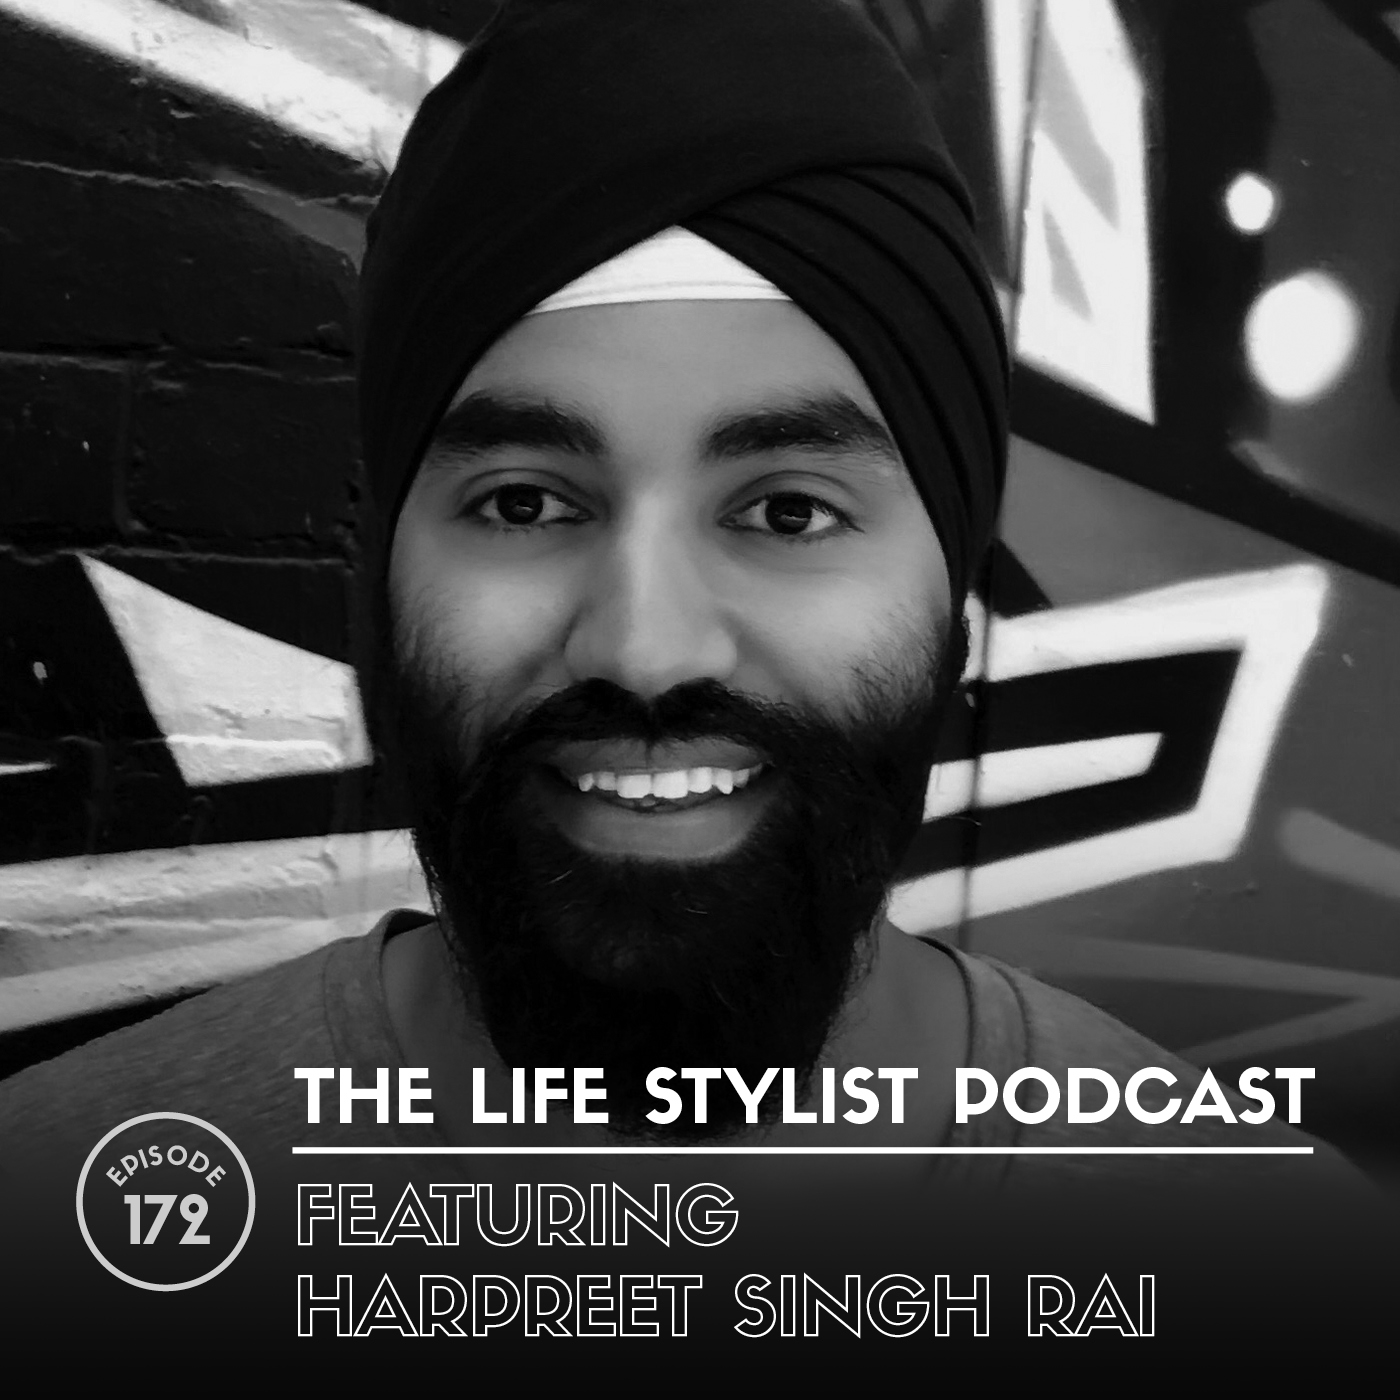 Harpreet Singh Rai is the CEO and creator of a  ouraring.com , a Finnish health technology company. Oura's primary product, the Oura Ring, is the world's first wellness ring. The Oura Ring tracks how your body responds to your lifestyle by analyzing your sleep, activity levels, daily rhythms and the physiological responses in your body.   Personalized for you, the Oura Ring fits comfortably and stylishly on your finger and guides you towards better sleep, recovery and readiness to perform. Oura has users in over 60 countries, and several top universities, research organizations, sleep clinics, and companies are utilizing the data and insights Oura provides.  Raised in Michigan by Punjabi parents, Harpreet has always felt drawn to international travel, and continued this trend by opening his company in Finland with additional locations in Iceland and San Francisco.   You can find him at @ouraring on Instagram and just about everywhere on social media.